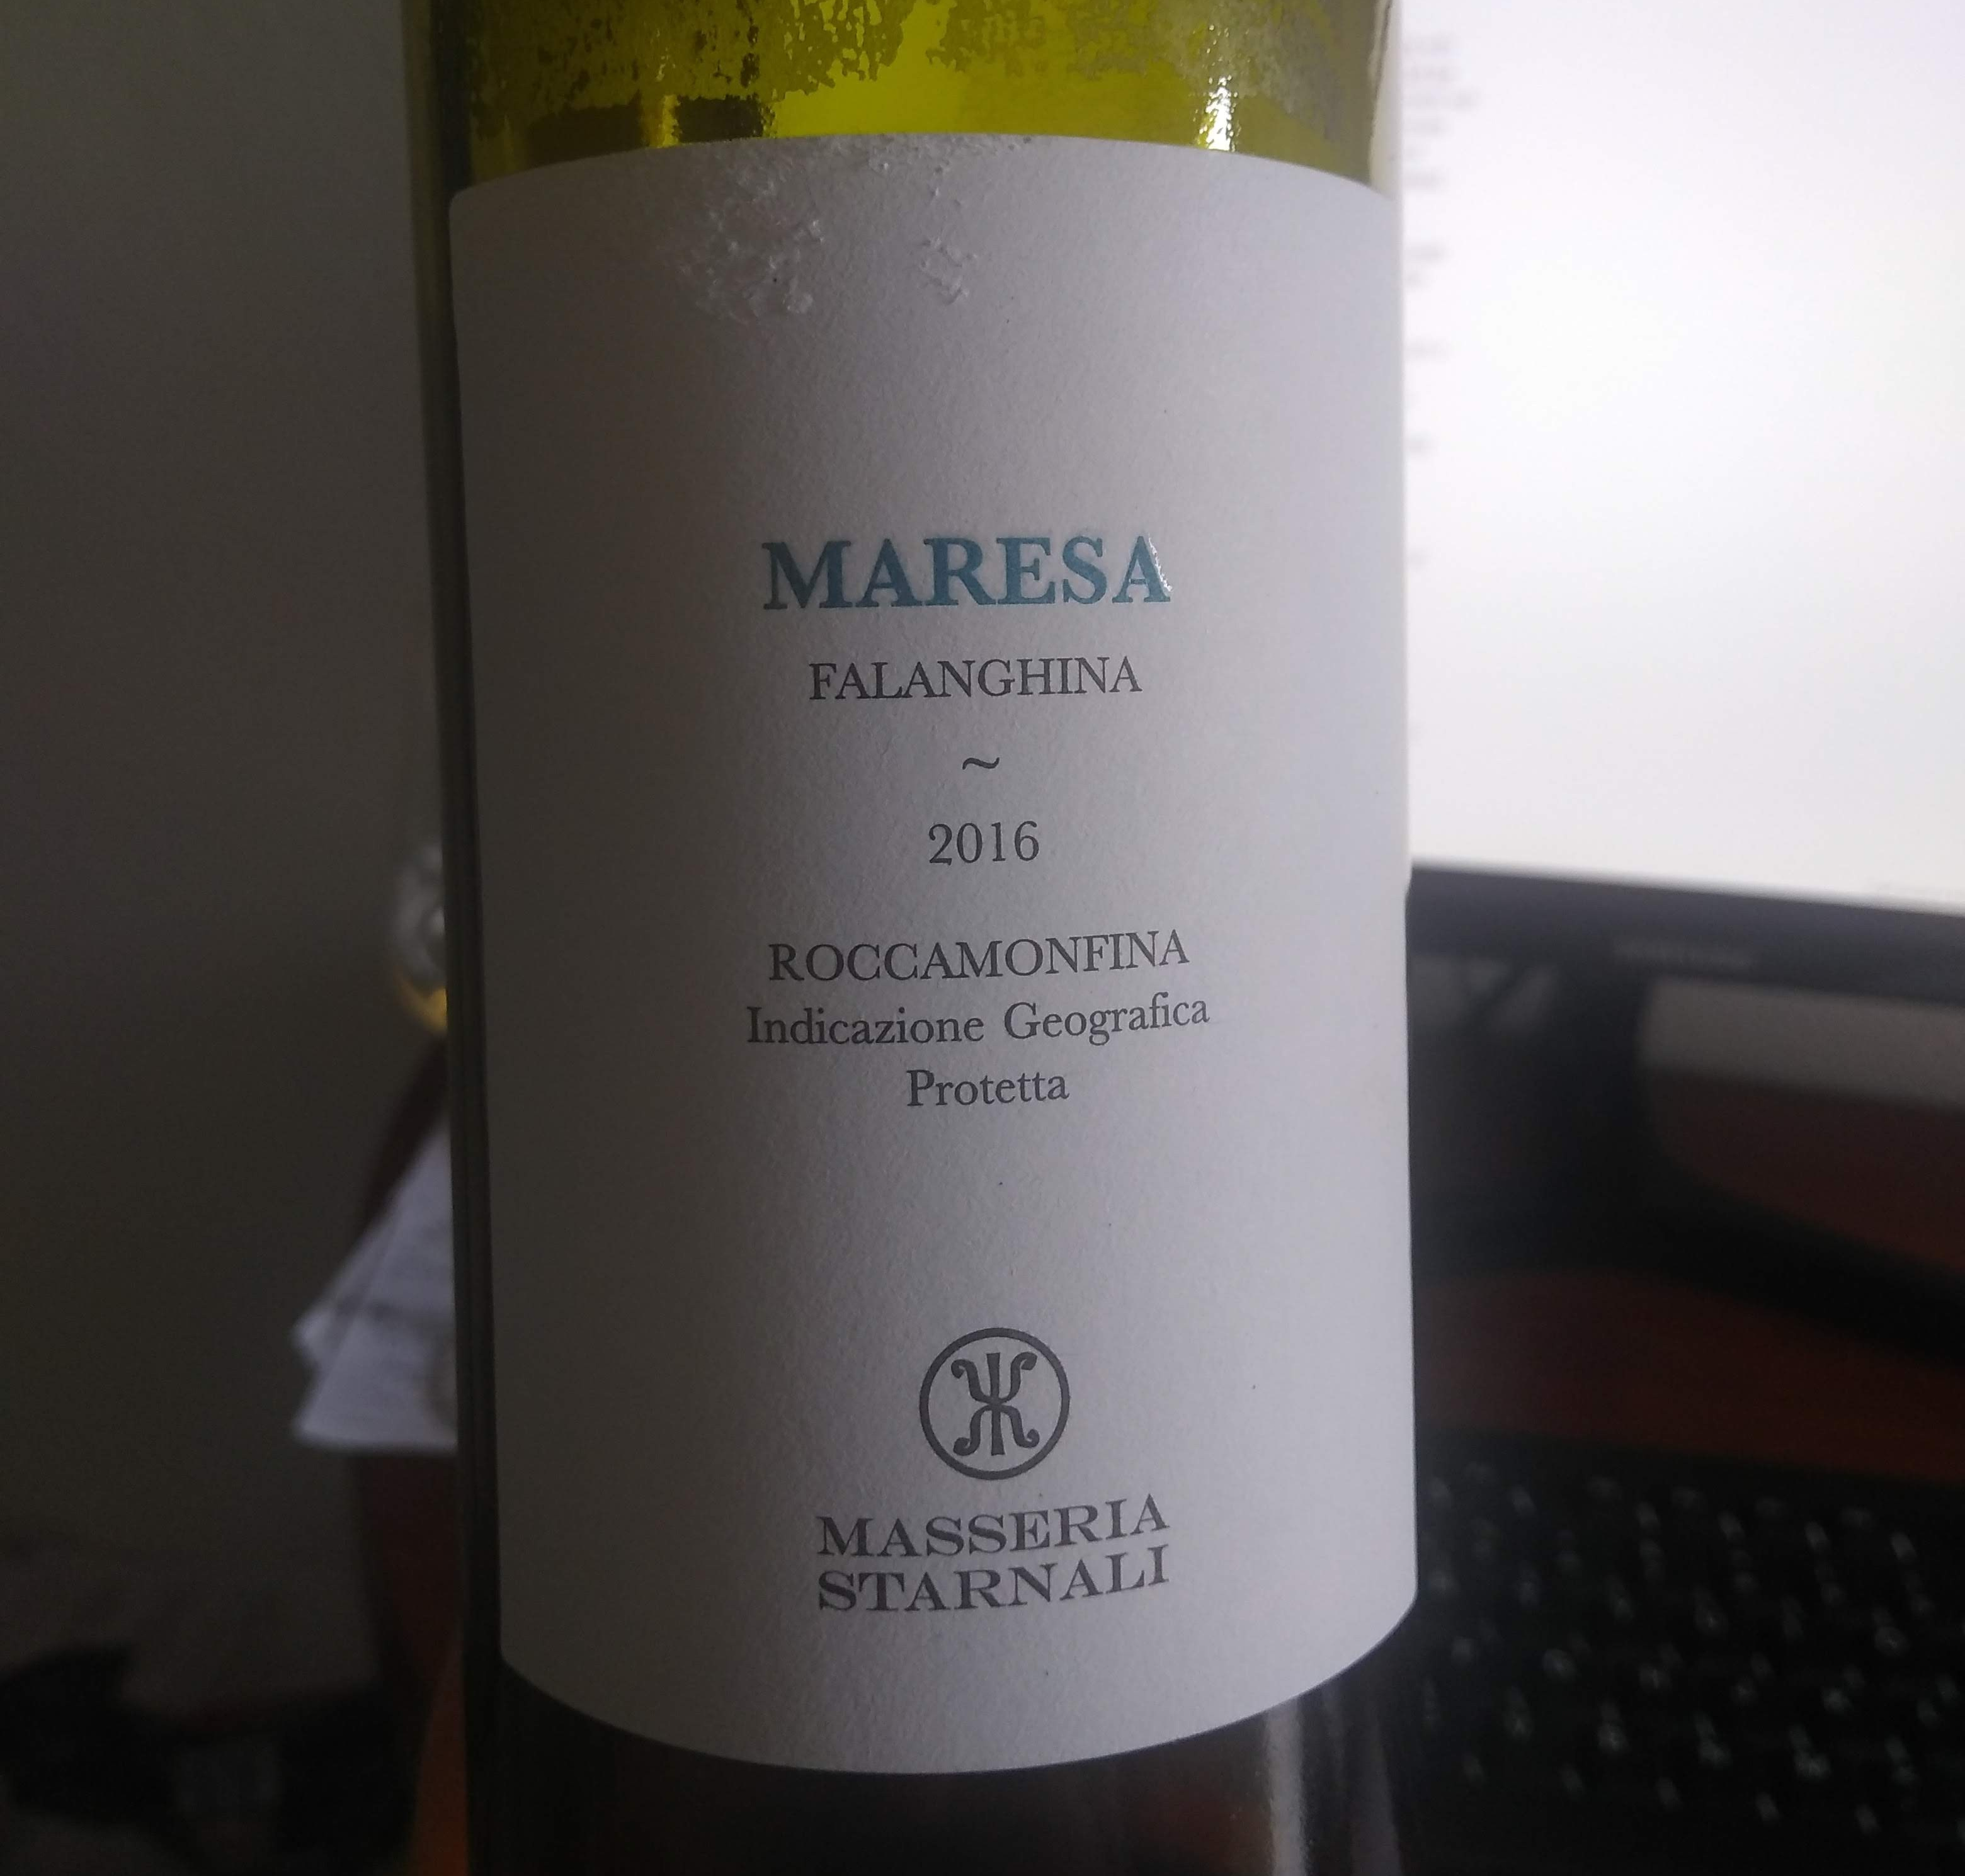 """Maresa"" 2016 from Masseria Starnali. Orange or Not?"